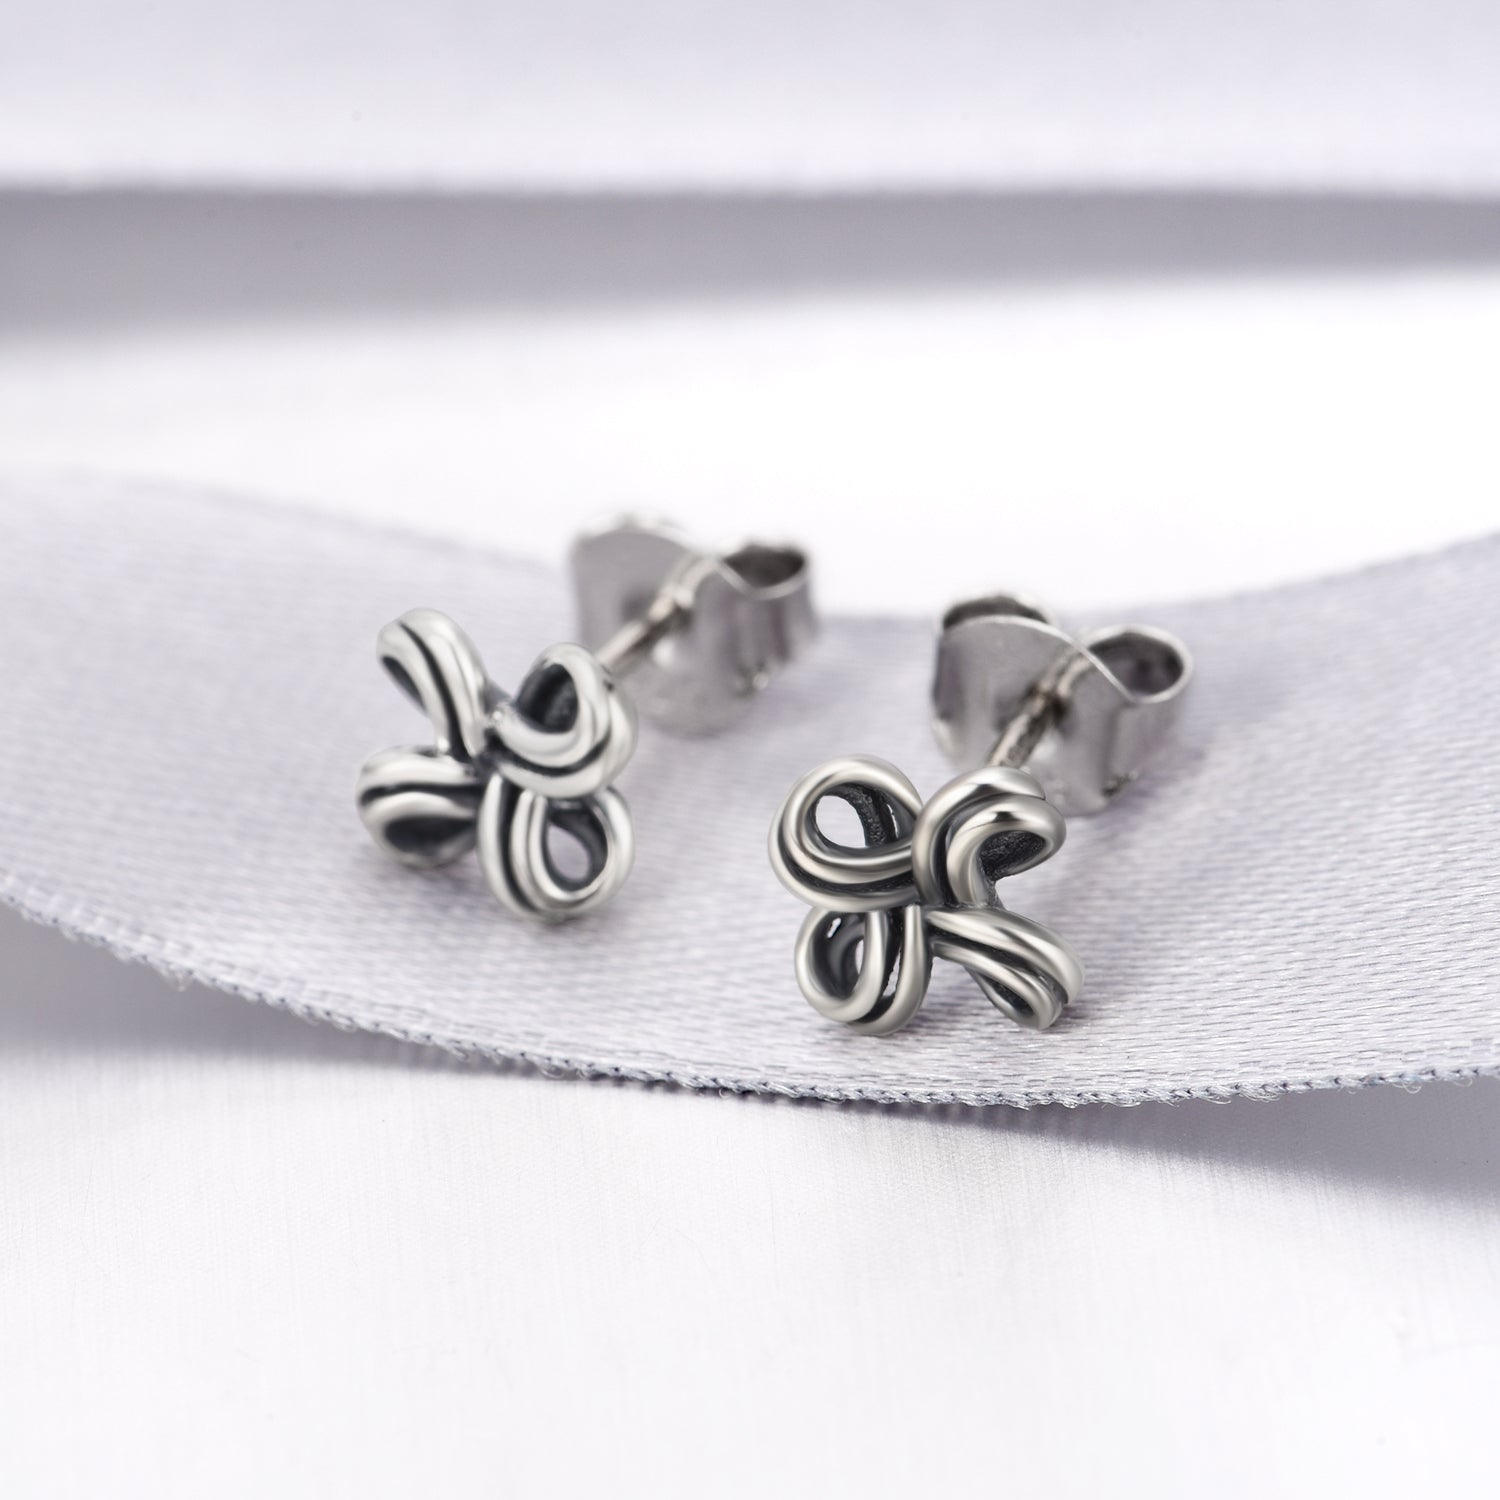 Stud Earrings Trendy Little Cute Hollow Design Earrings